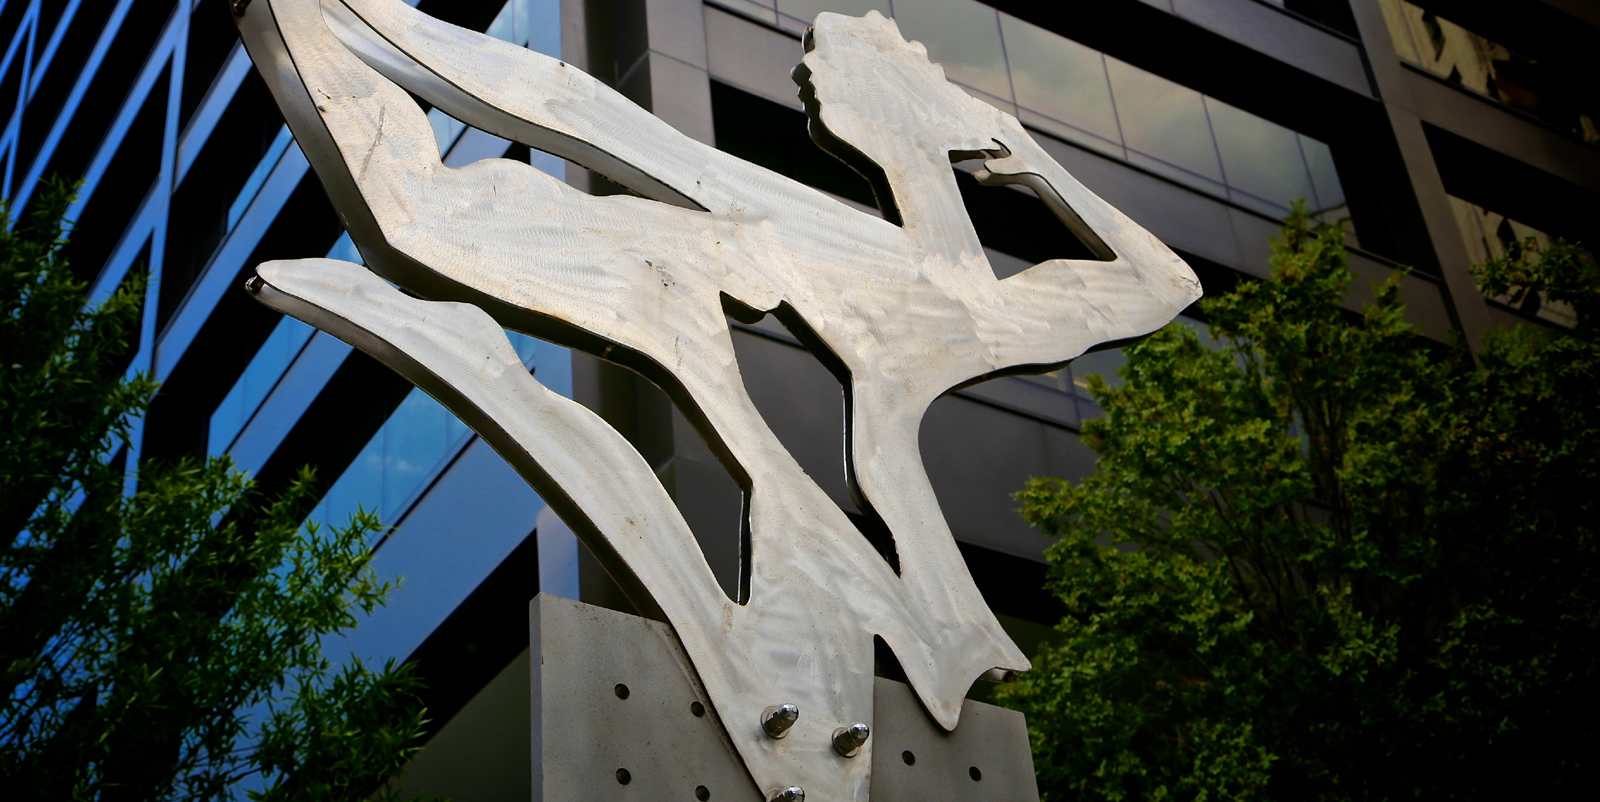 Metal sculpture outside of Zeller property 100 Peachtree Street